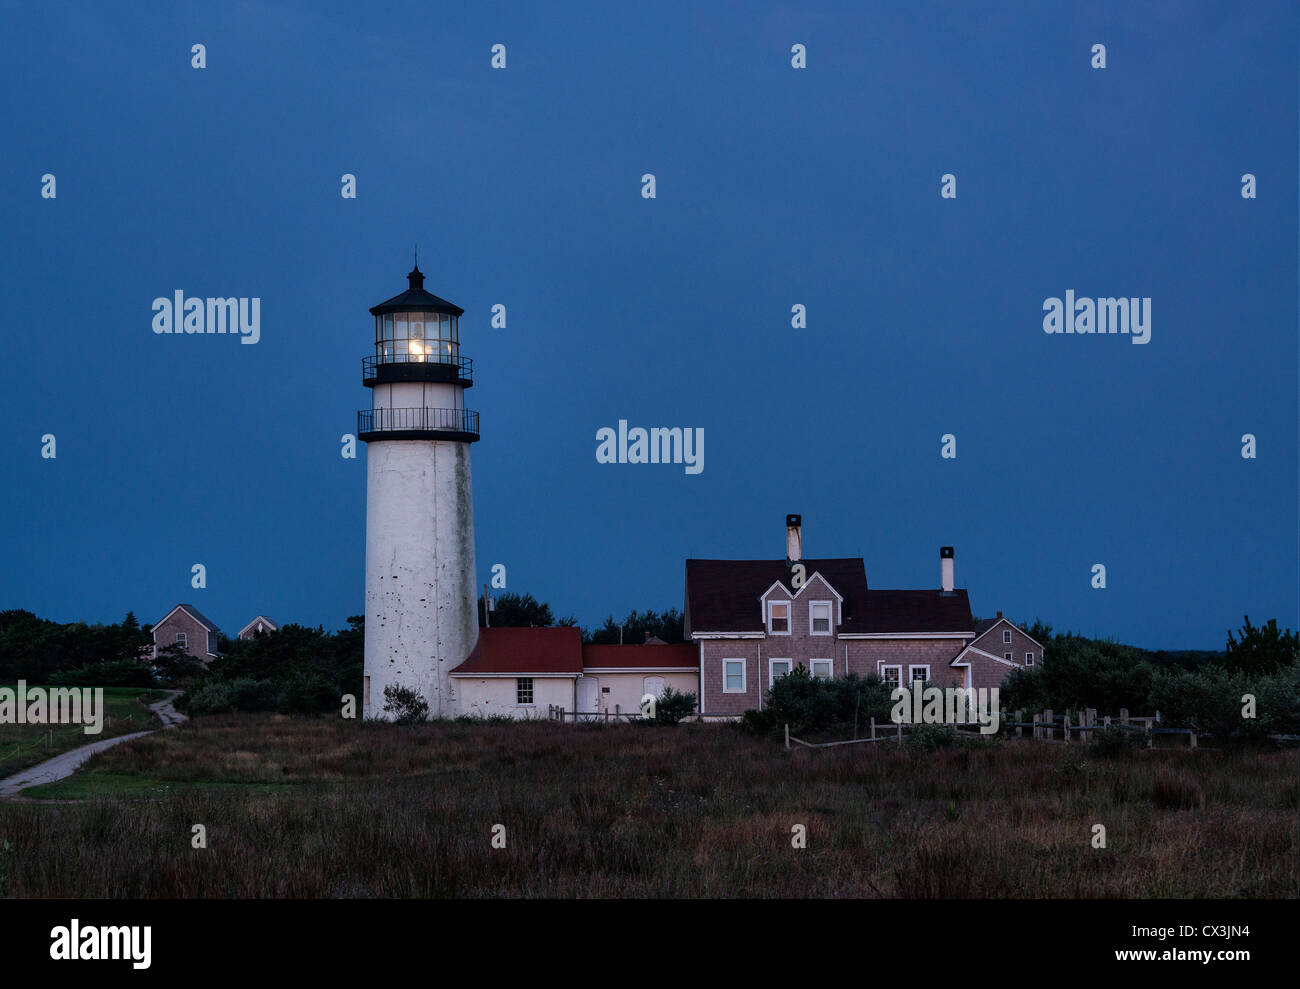 Cape Cod Lighthouse, Truro, Cape Cod, Massachusetts, USA Also known as Highland Lighthouse. - Stock Image